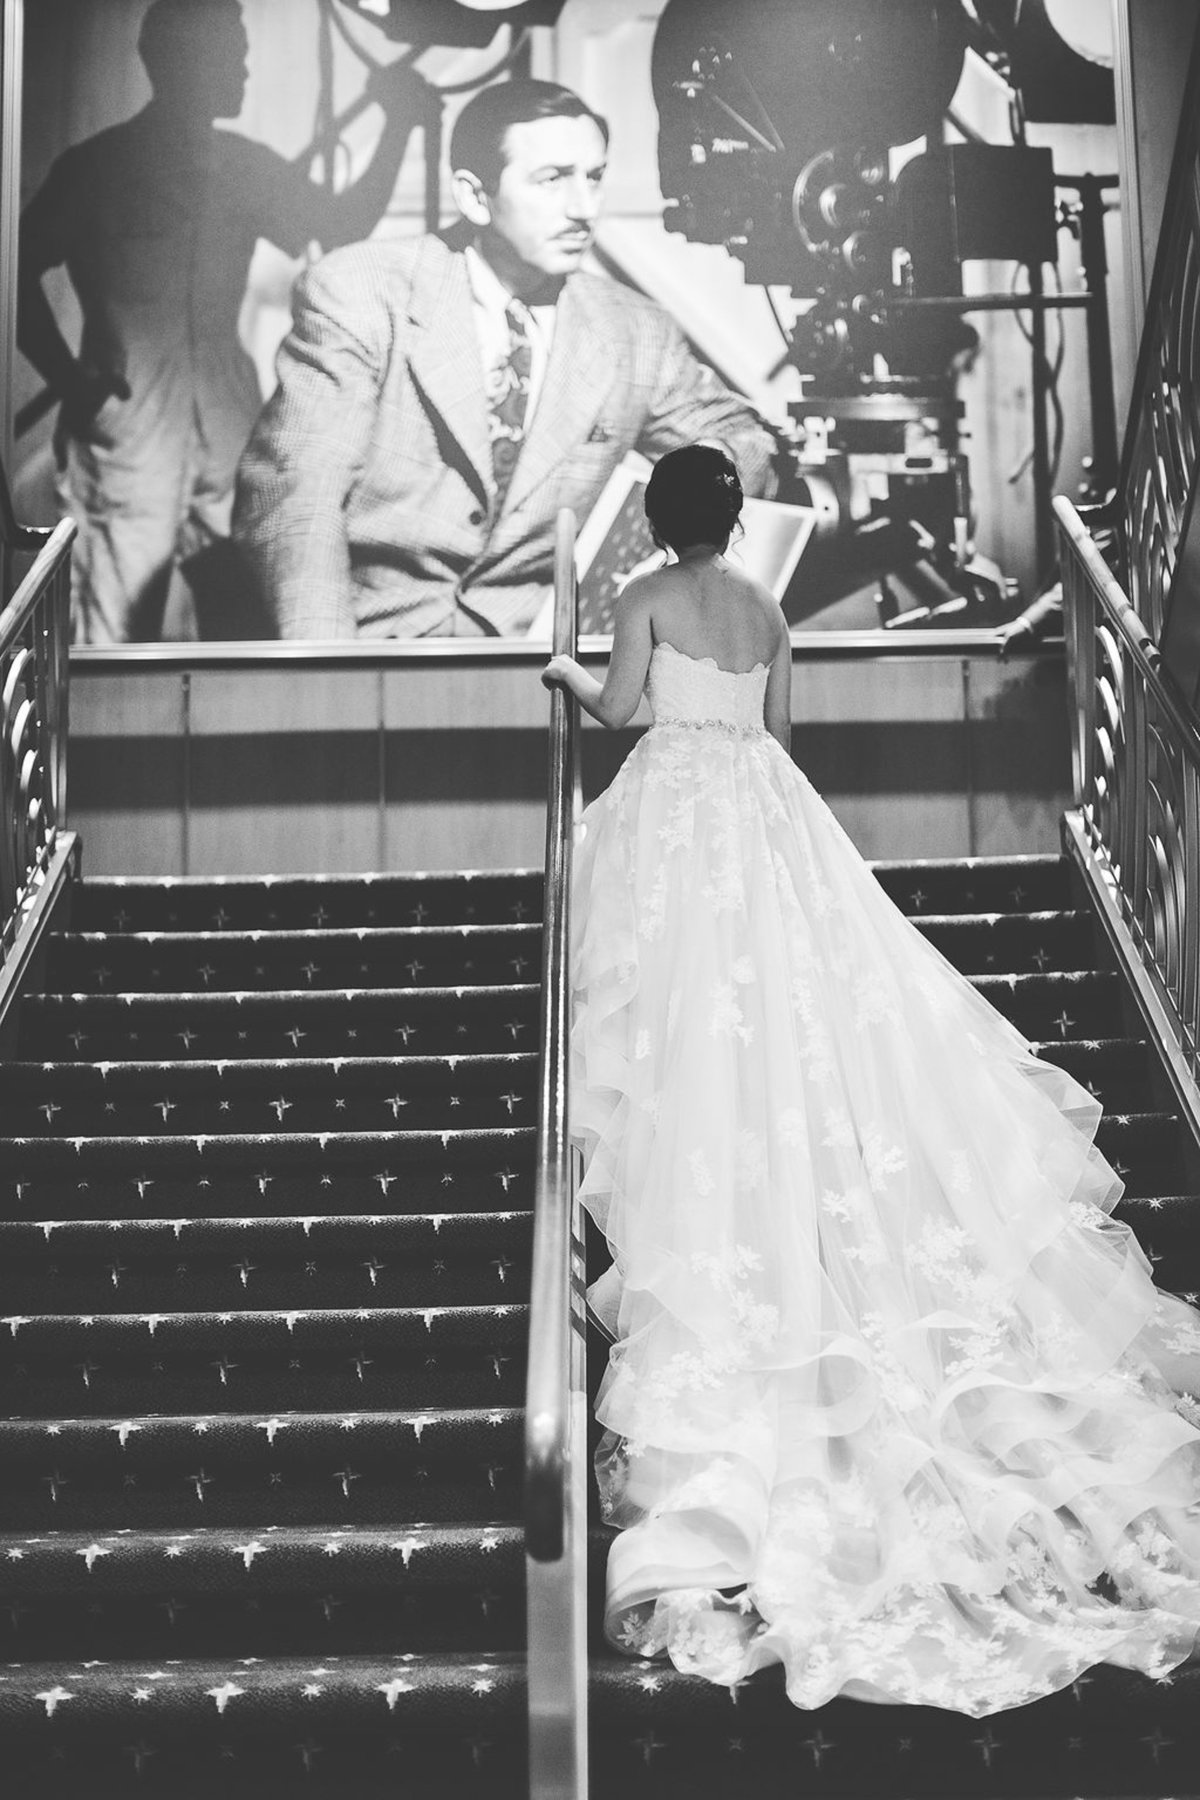 Disney-Cruise-Bride-Disney-Dream-On-Board-Wedding-Nassau-Bahamas-Jessica-Lea-IMG-211